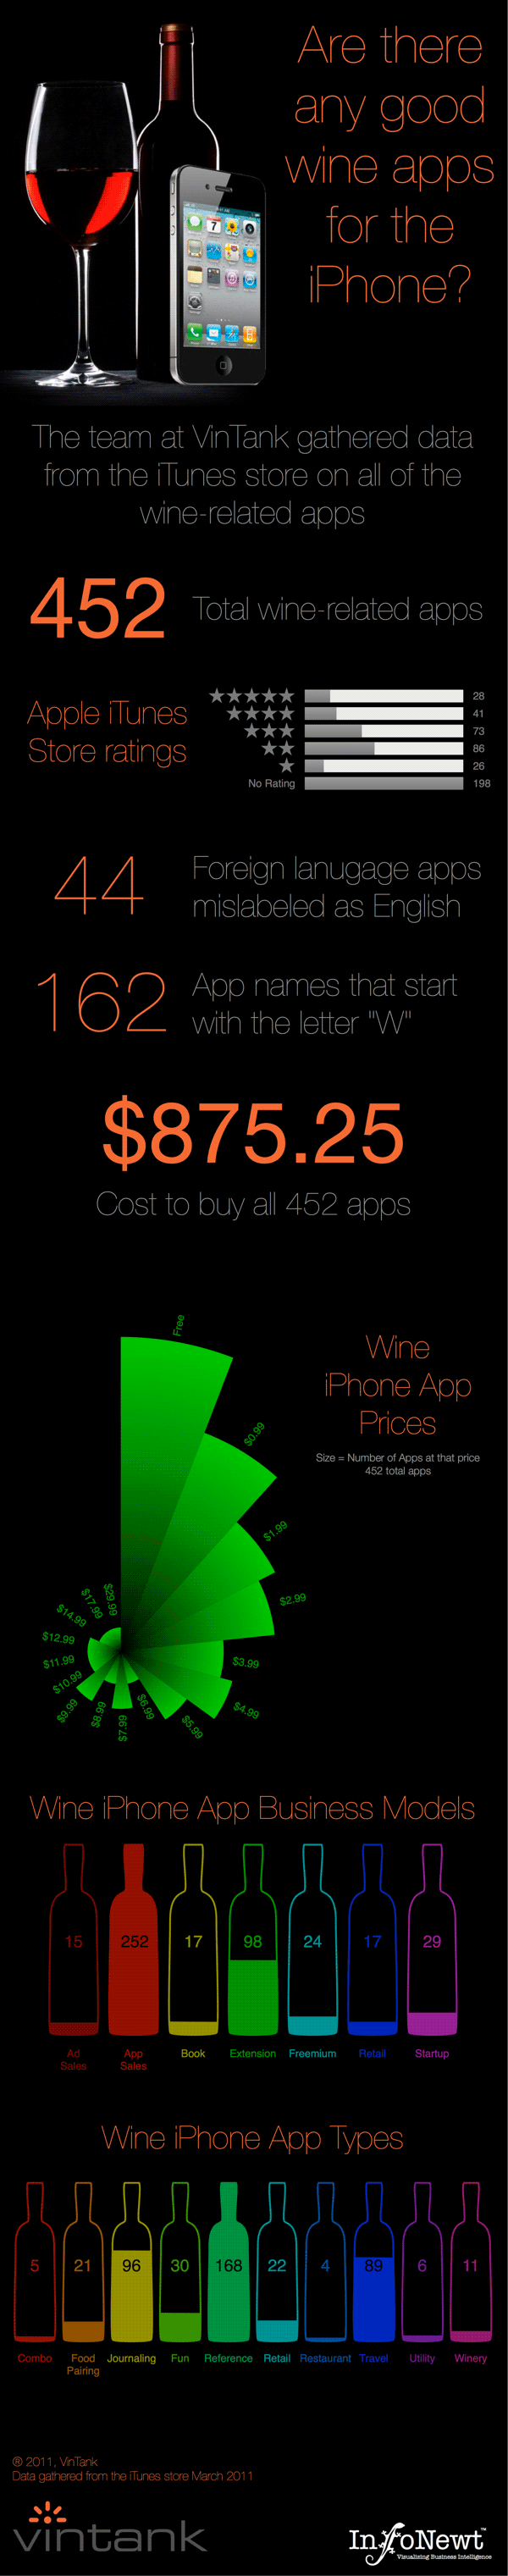 Wine iphone app infographic